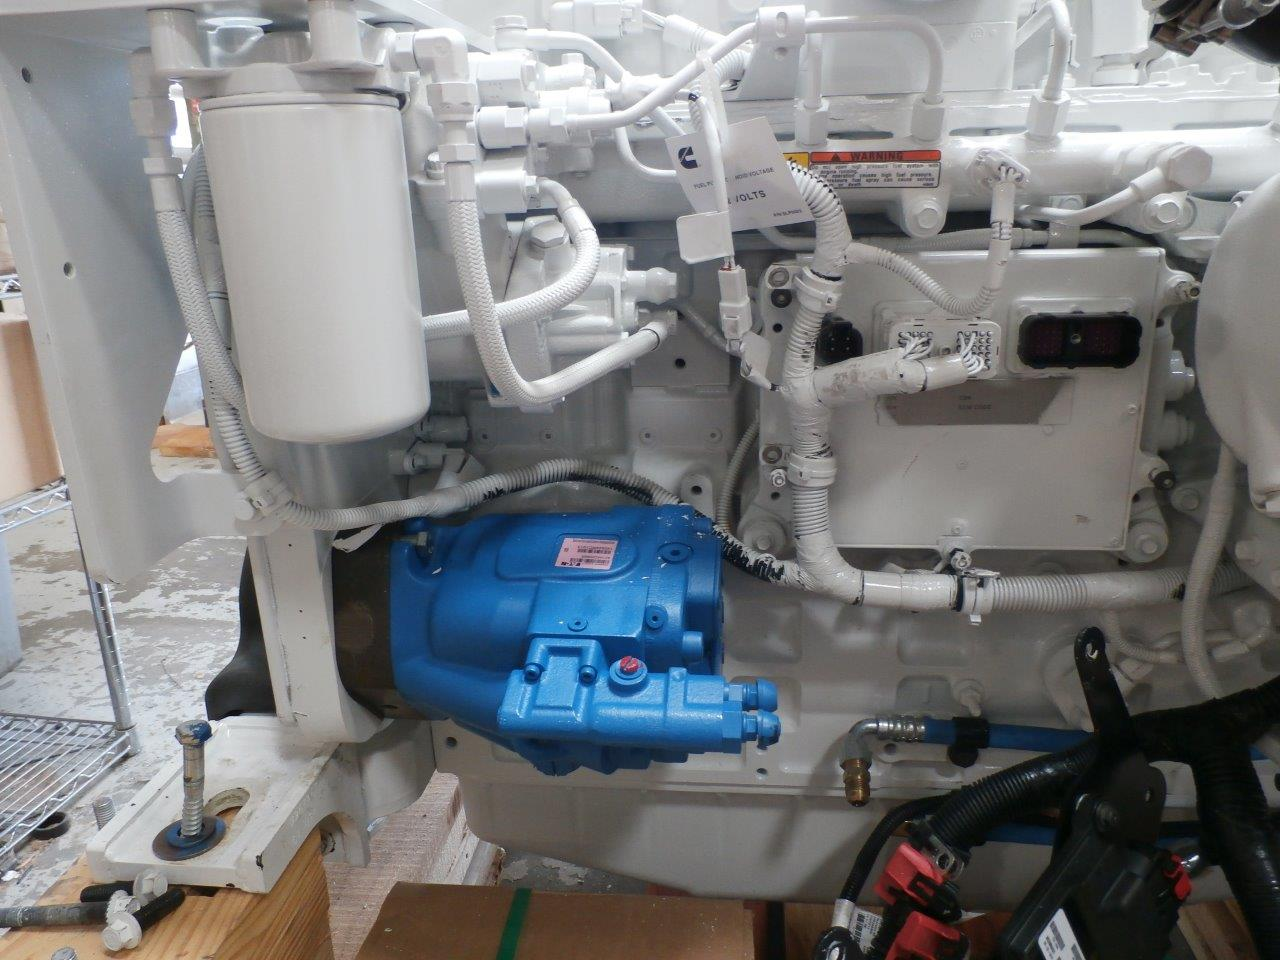 QSC with Big Gear Driven Smart Pump